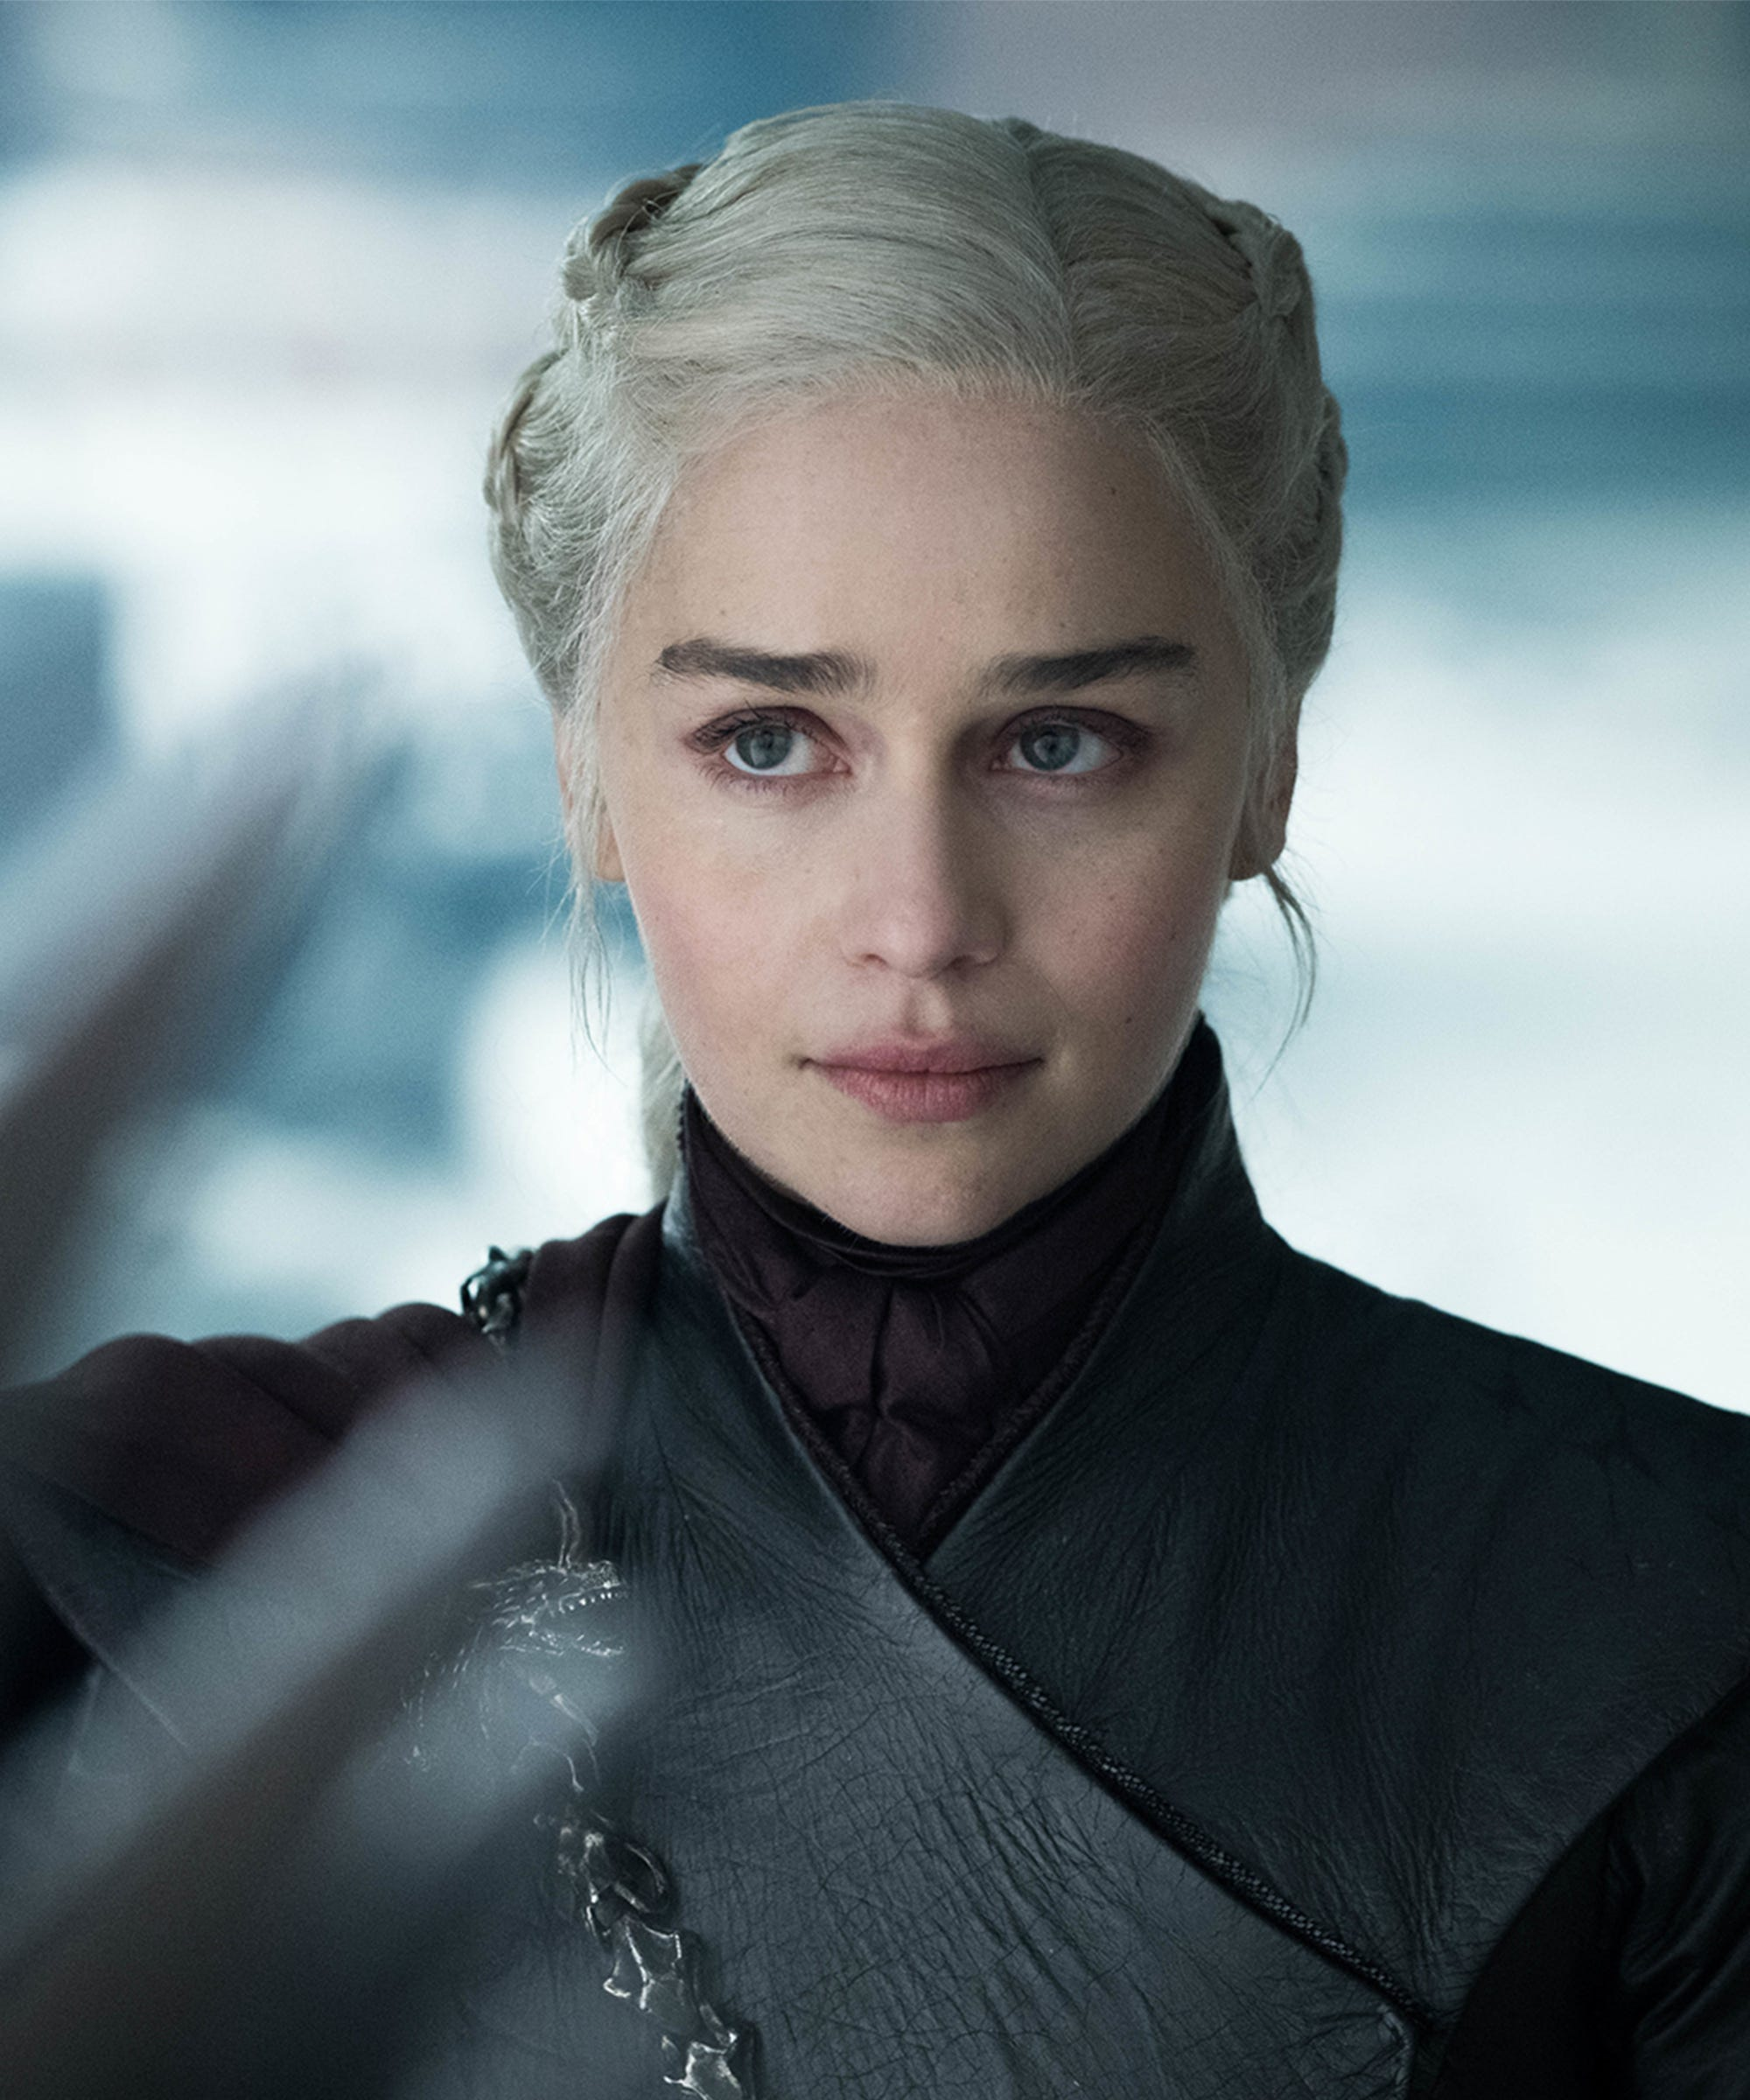 A Starbucks Cup, 2 Water Bottles & Dany's Style — All The Things That GoT Got Wrong In The End